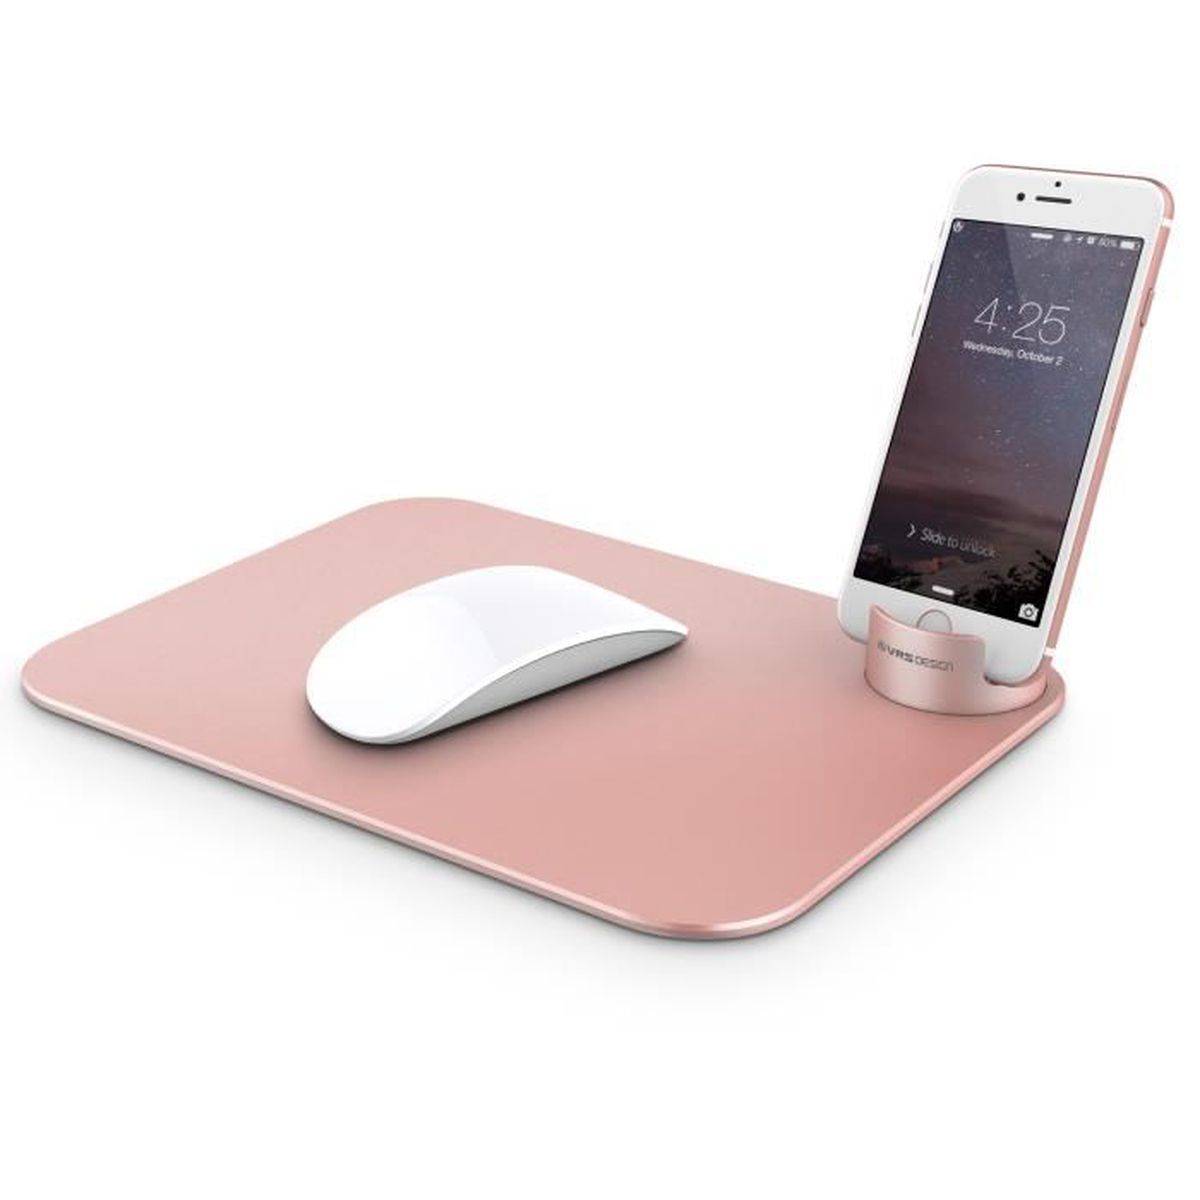 Tapis De Souris M 233 Tallique Avec Support Mobile Vrs Design